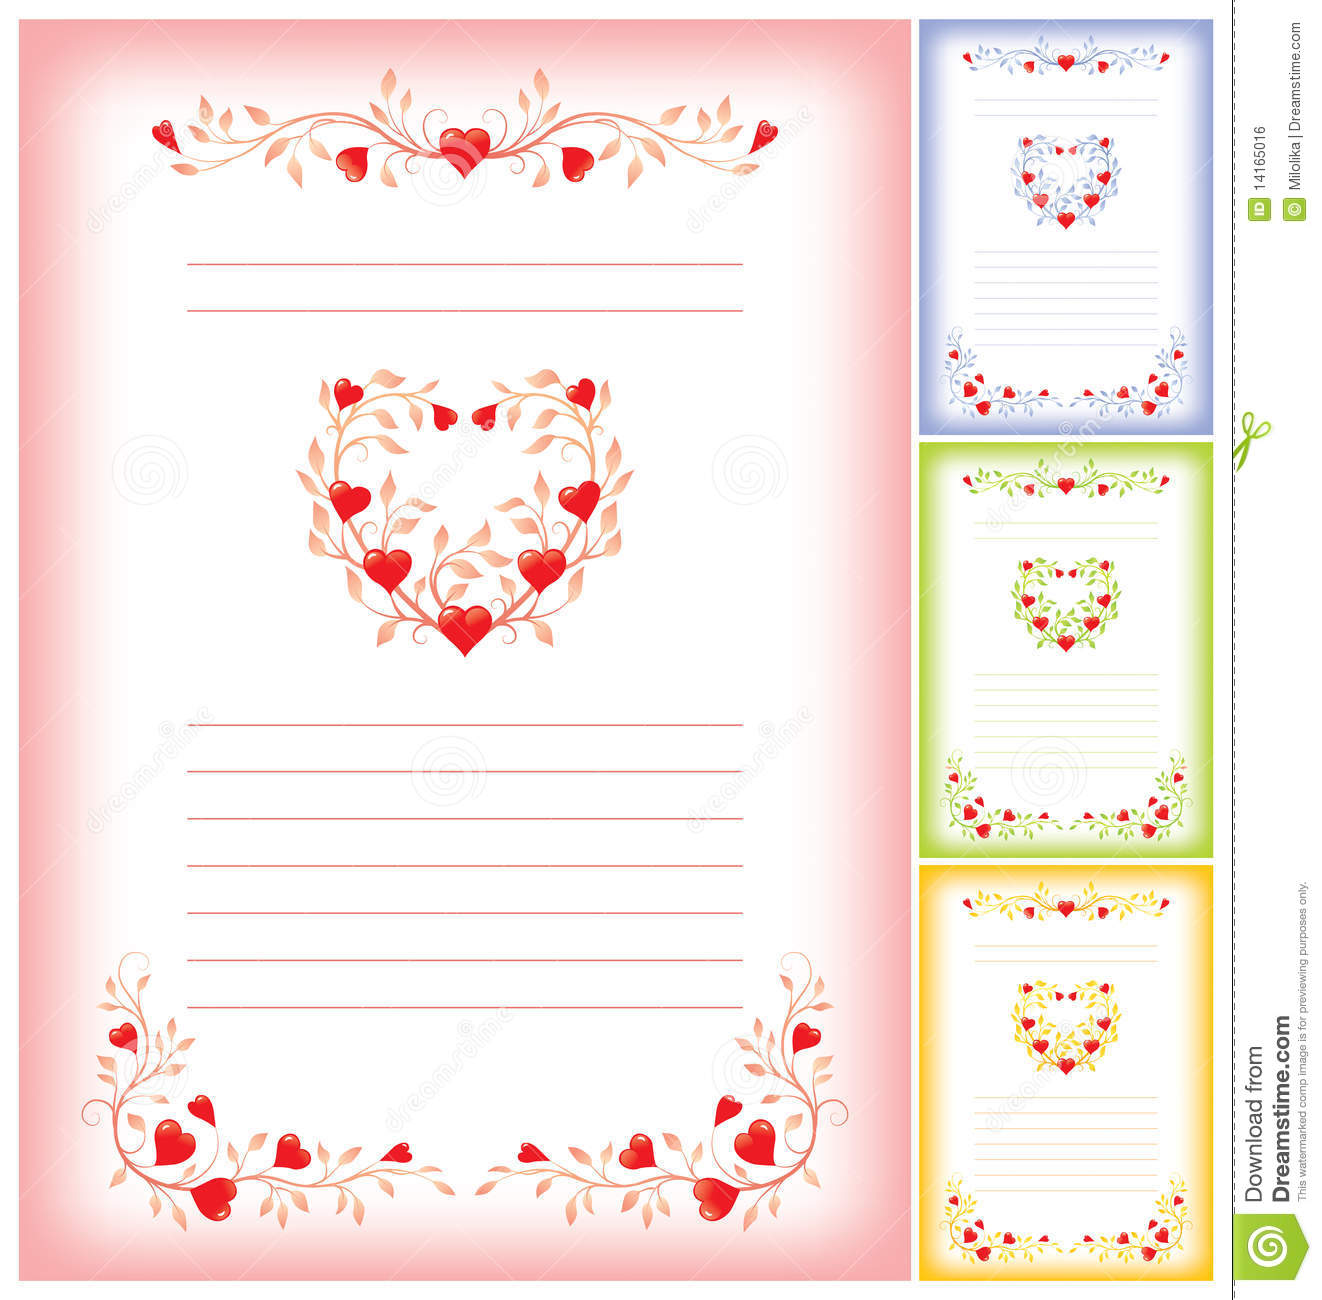 Romantic Letter Template With Hearts Stock Vector  Illustration Of